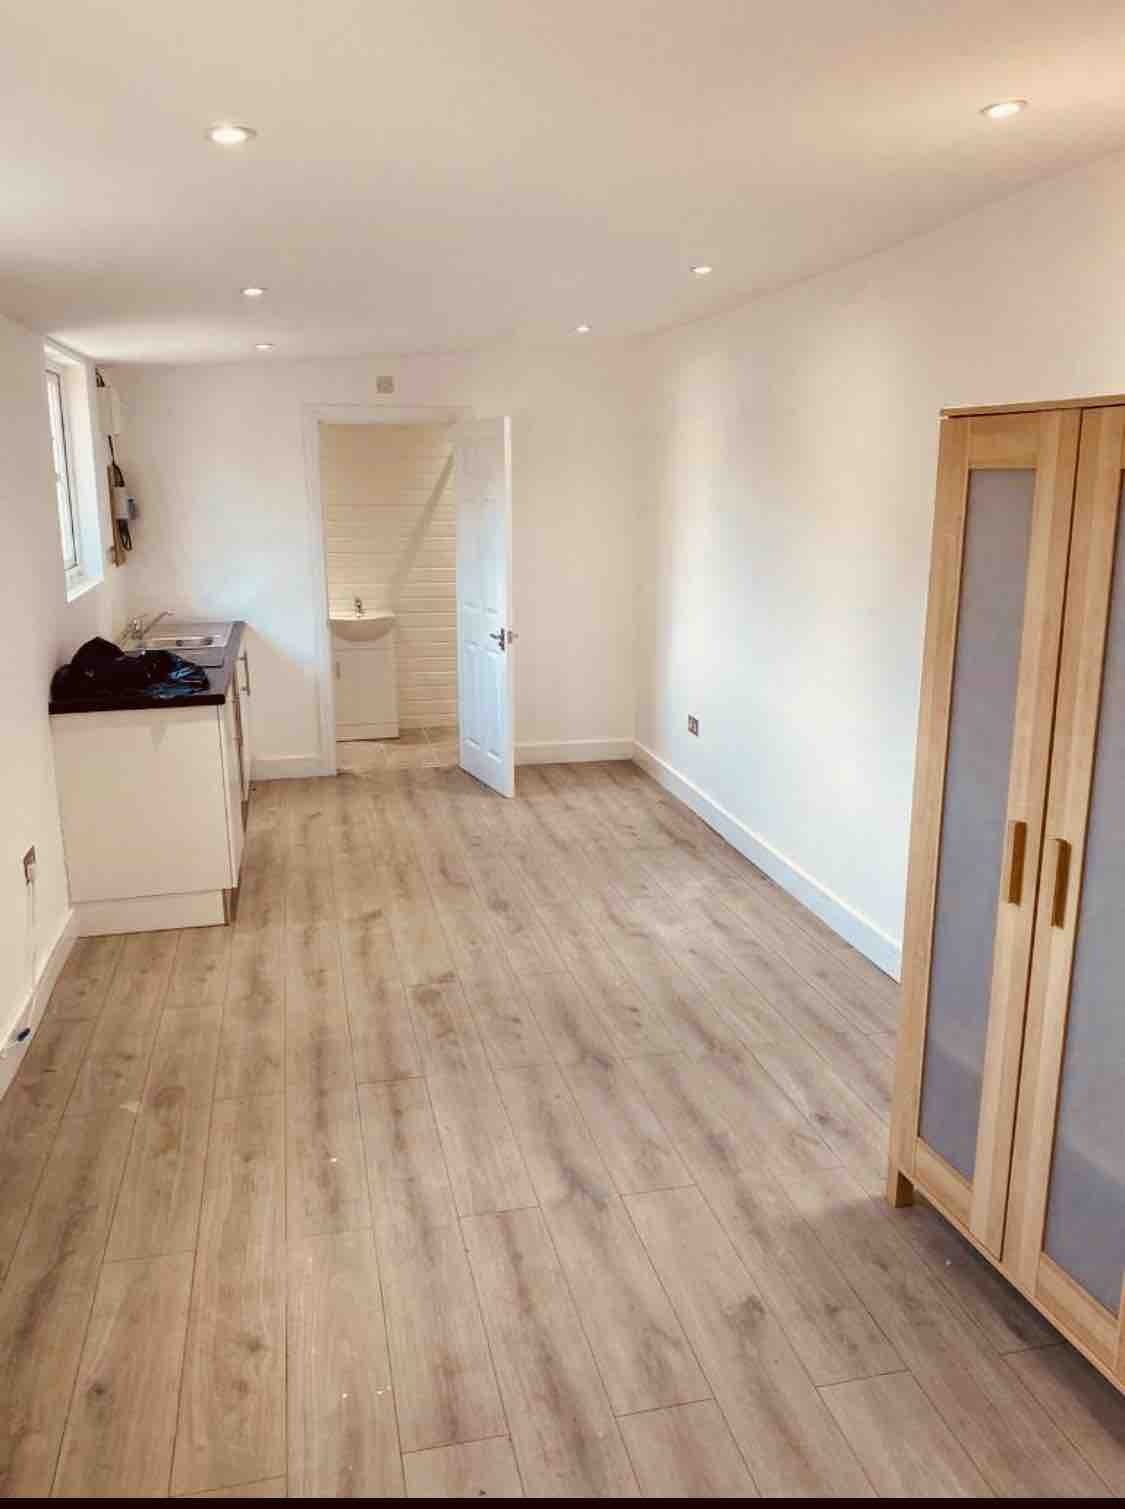 1 room in Heston East, Heston, TW5 0EP RoomsLocal image